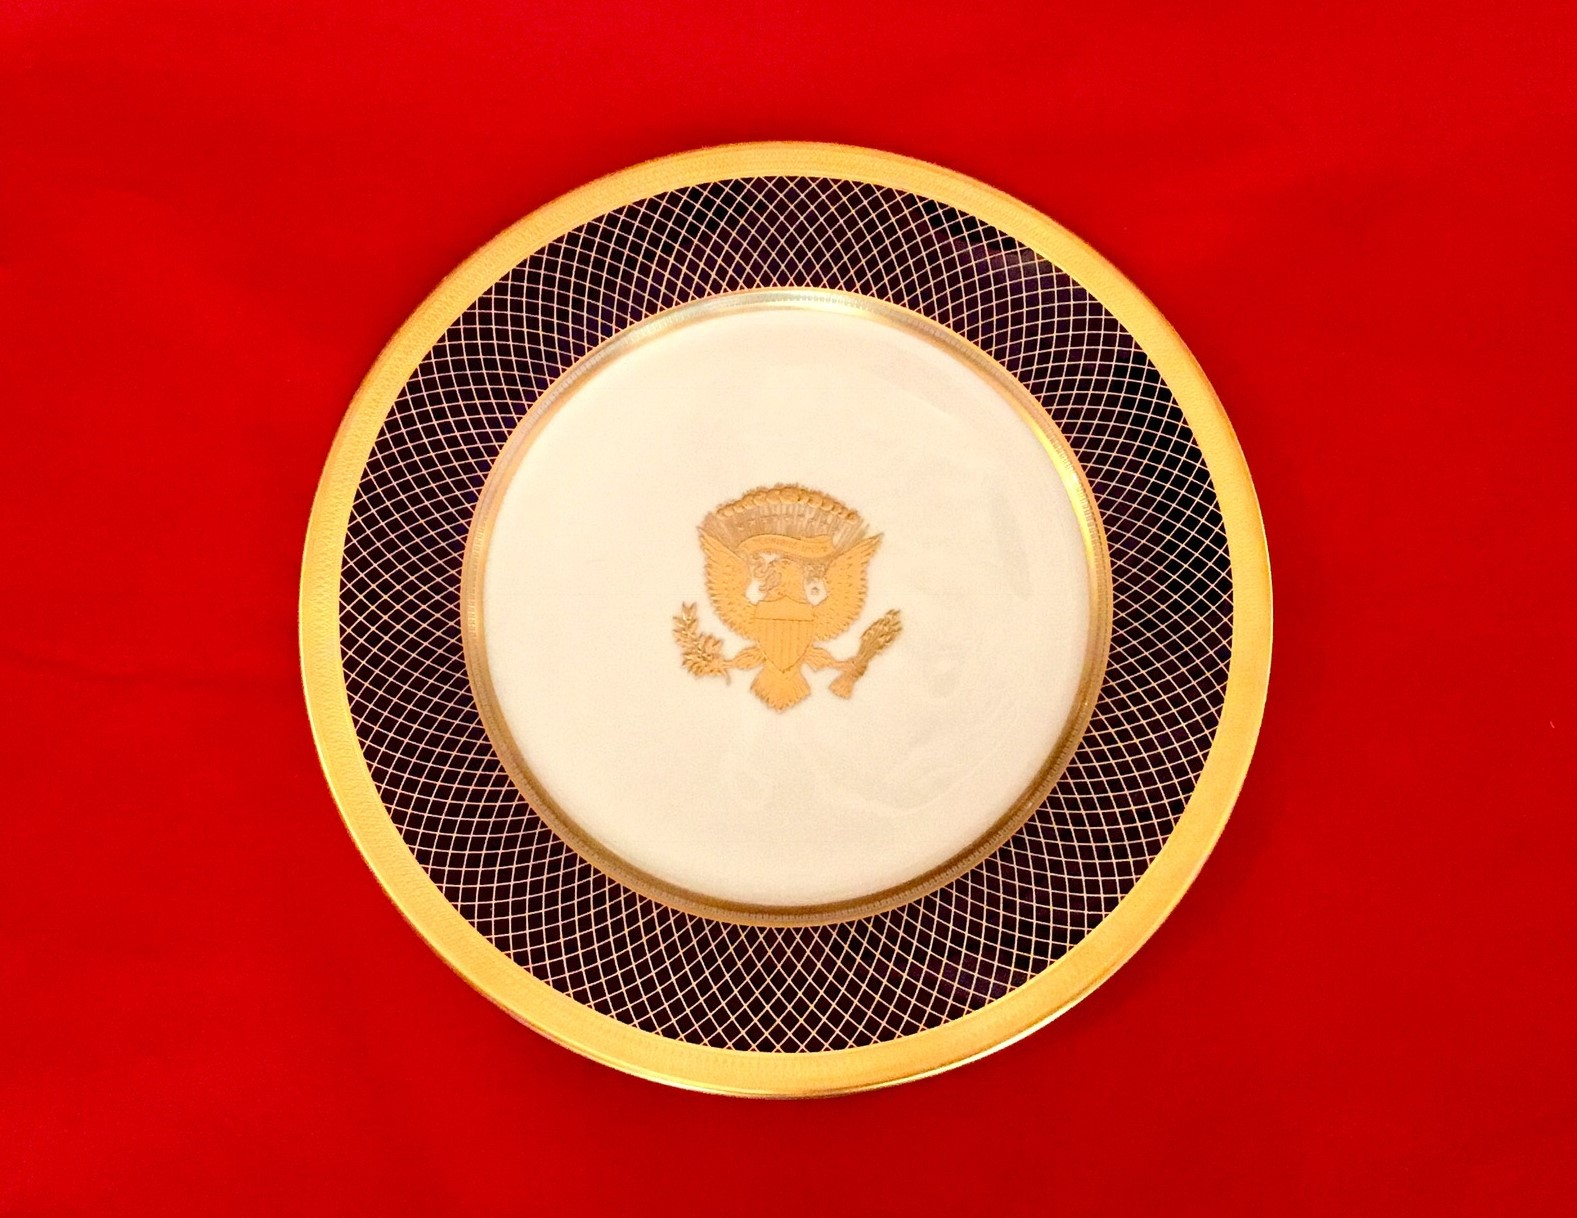 Clinton OVAL OFFICE CHINA